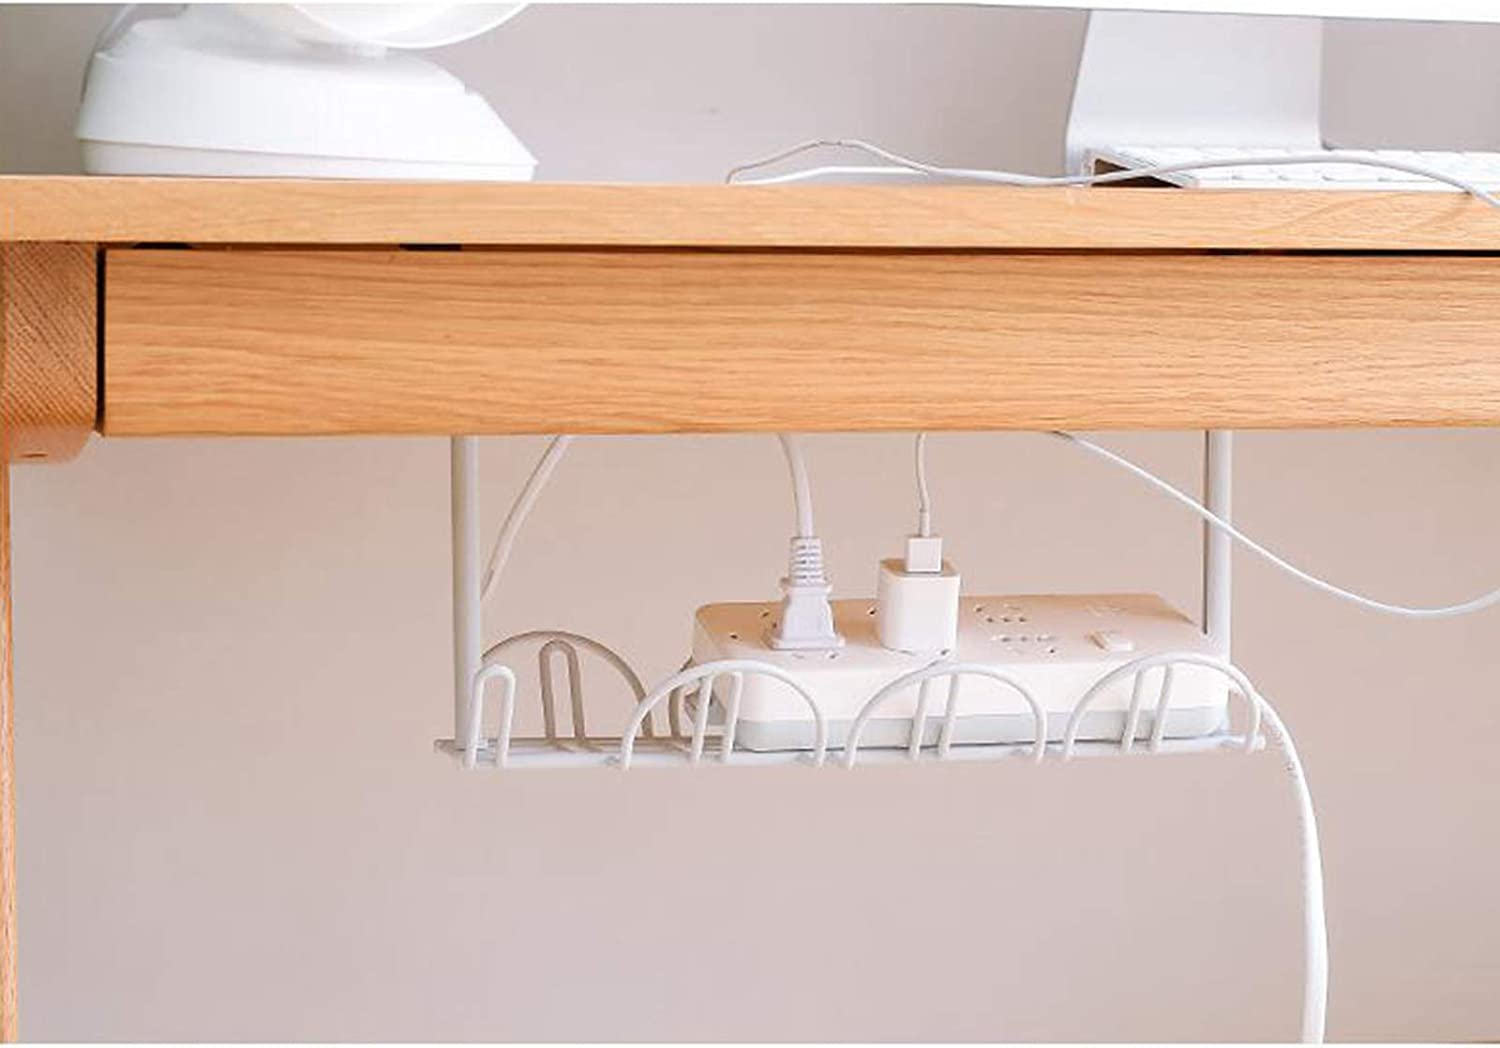 Under Desk Cable Management Tray 12.6 inch Under Desk Cable Organizer Office Supplies White